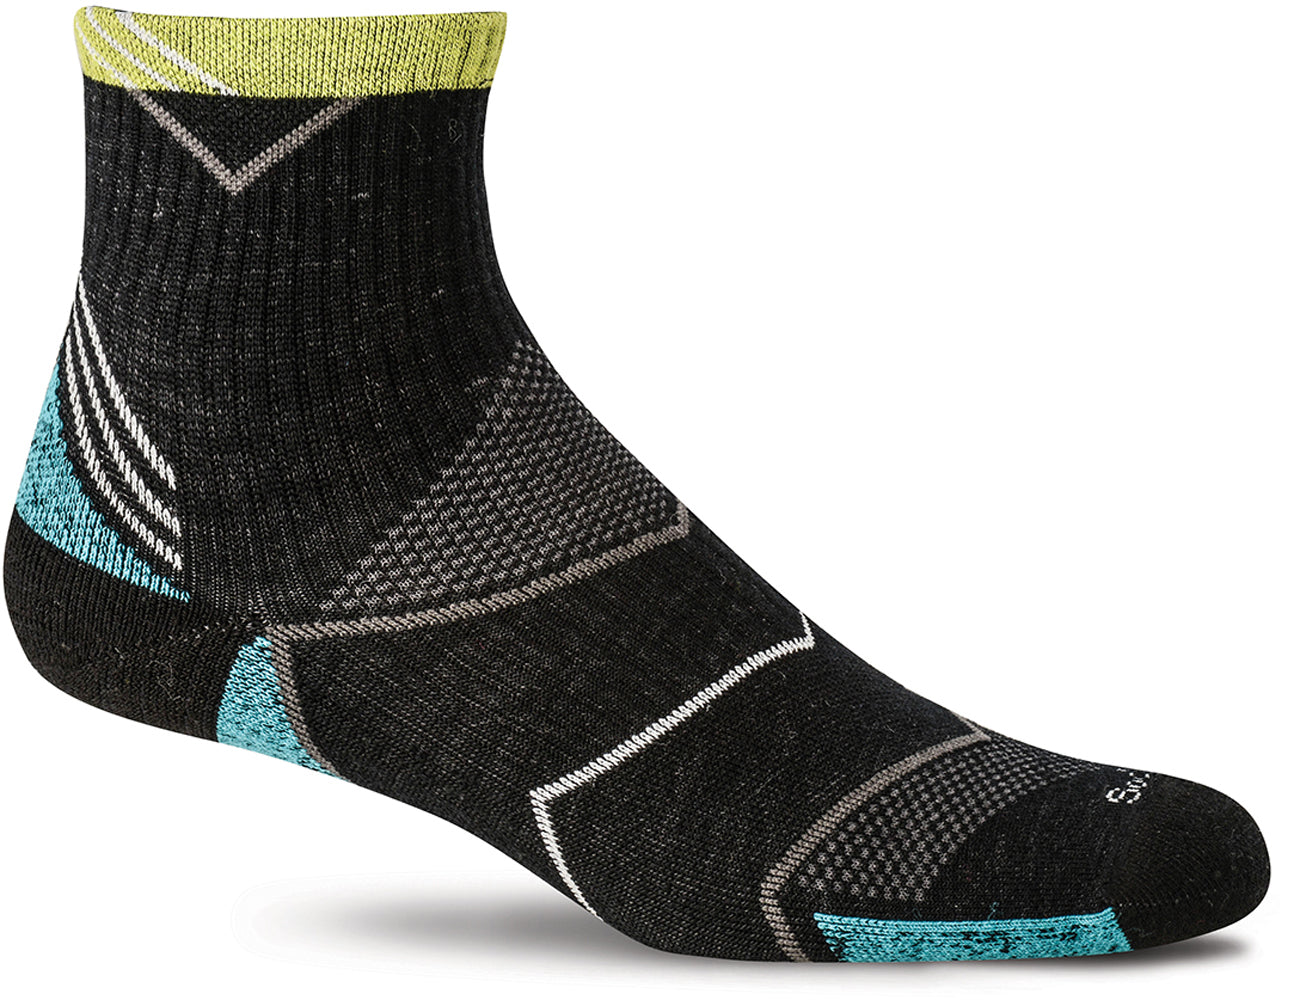 Sockwell Women's Incline Quarter Sock in Black color from the side